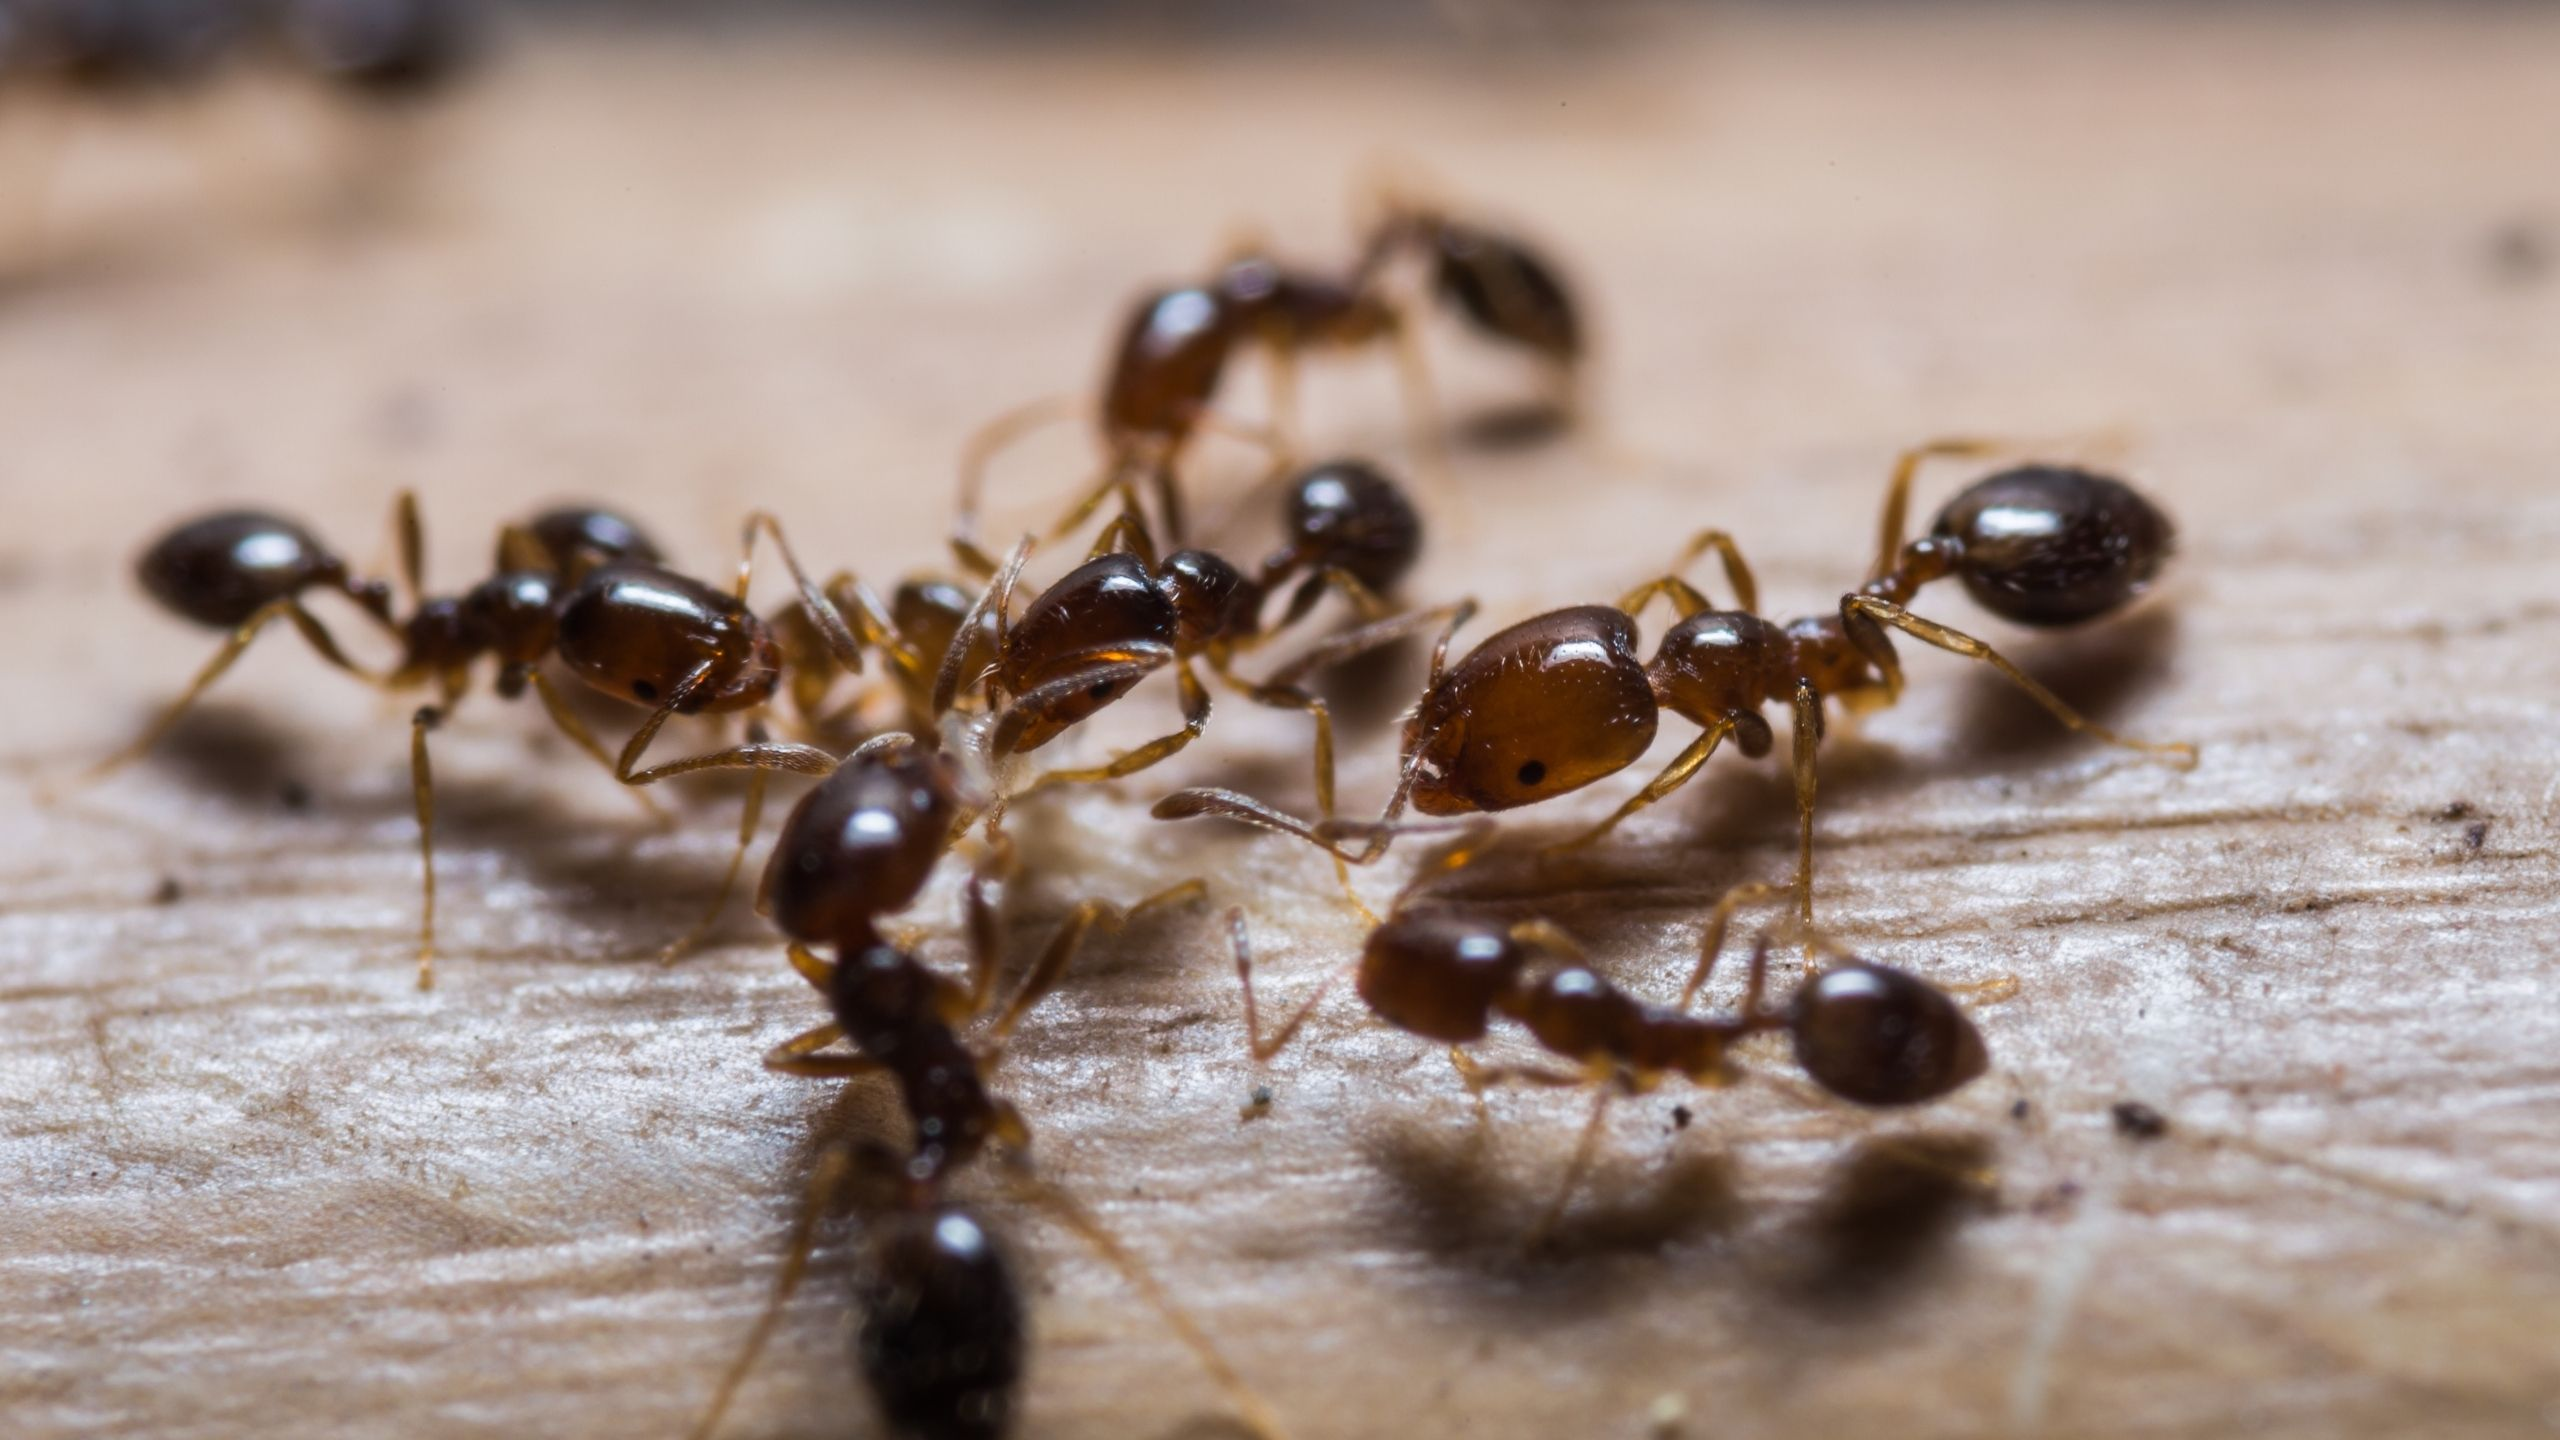 Red imported fire ant (IFA) workers swarming a boot.